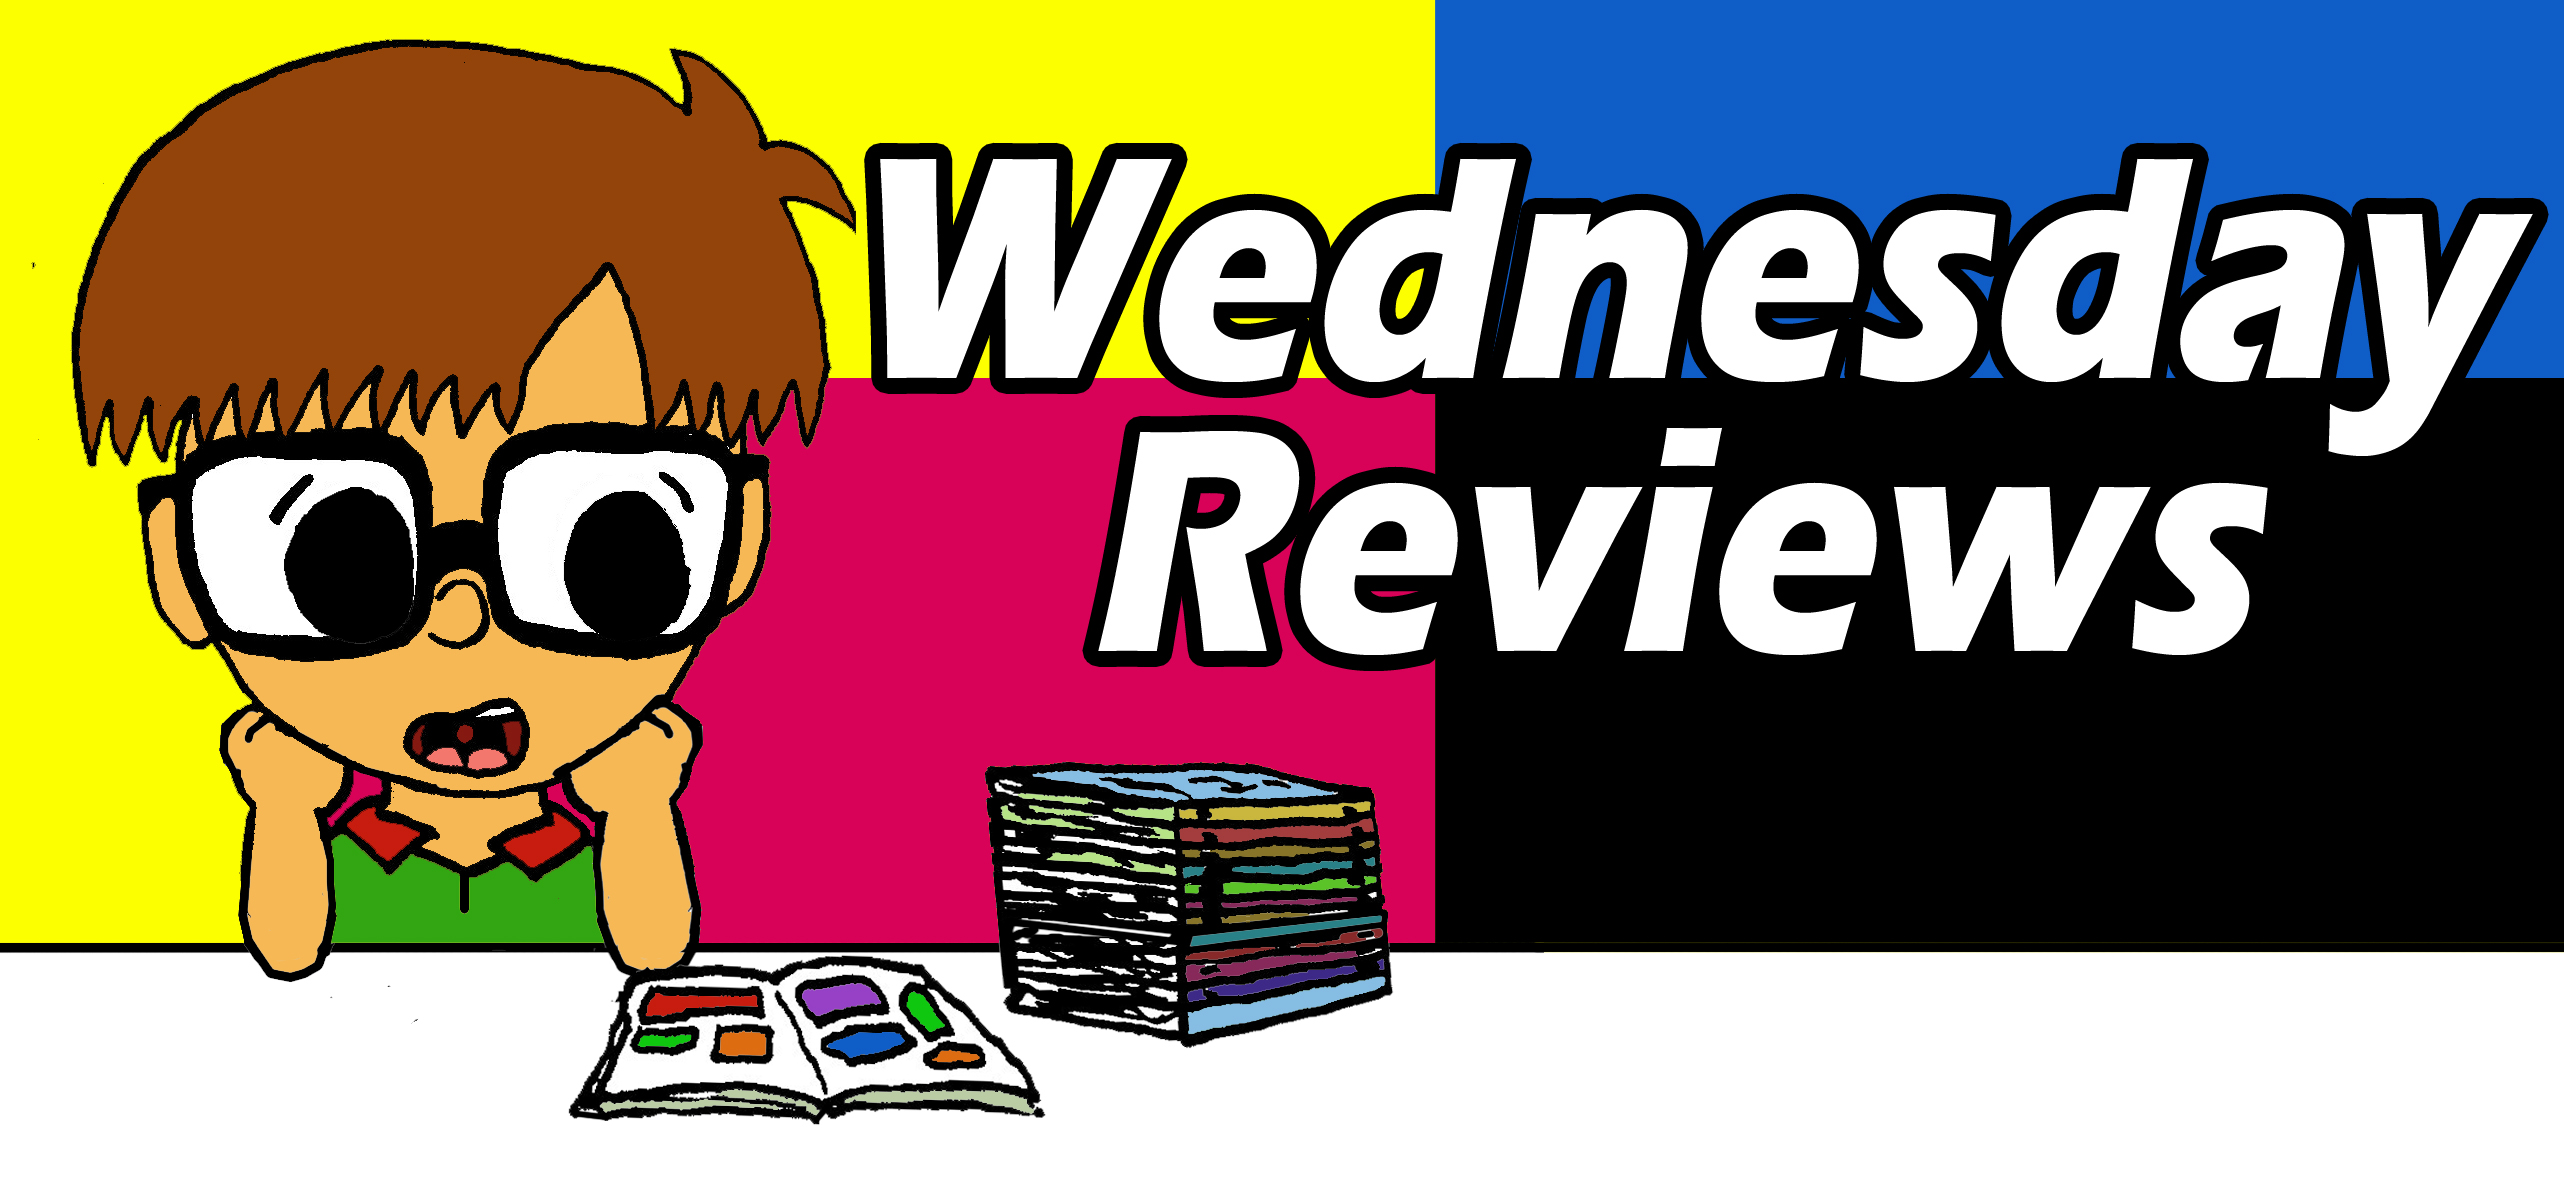 Wednesday Reviews – October 29 5TH WEEK EDITION!